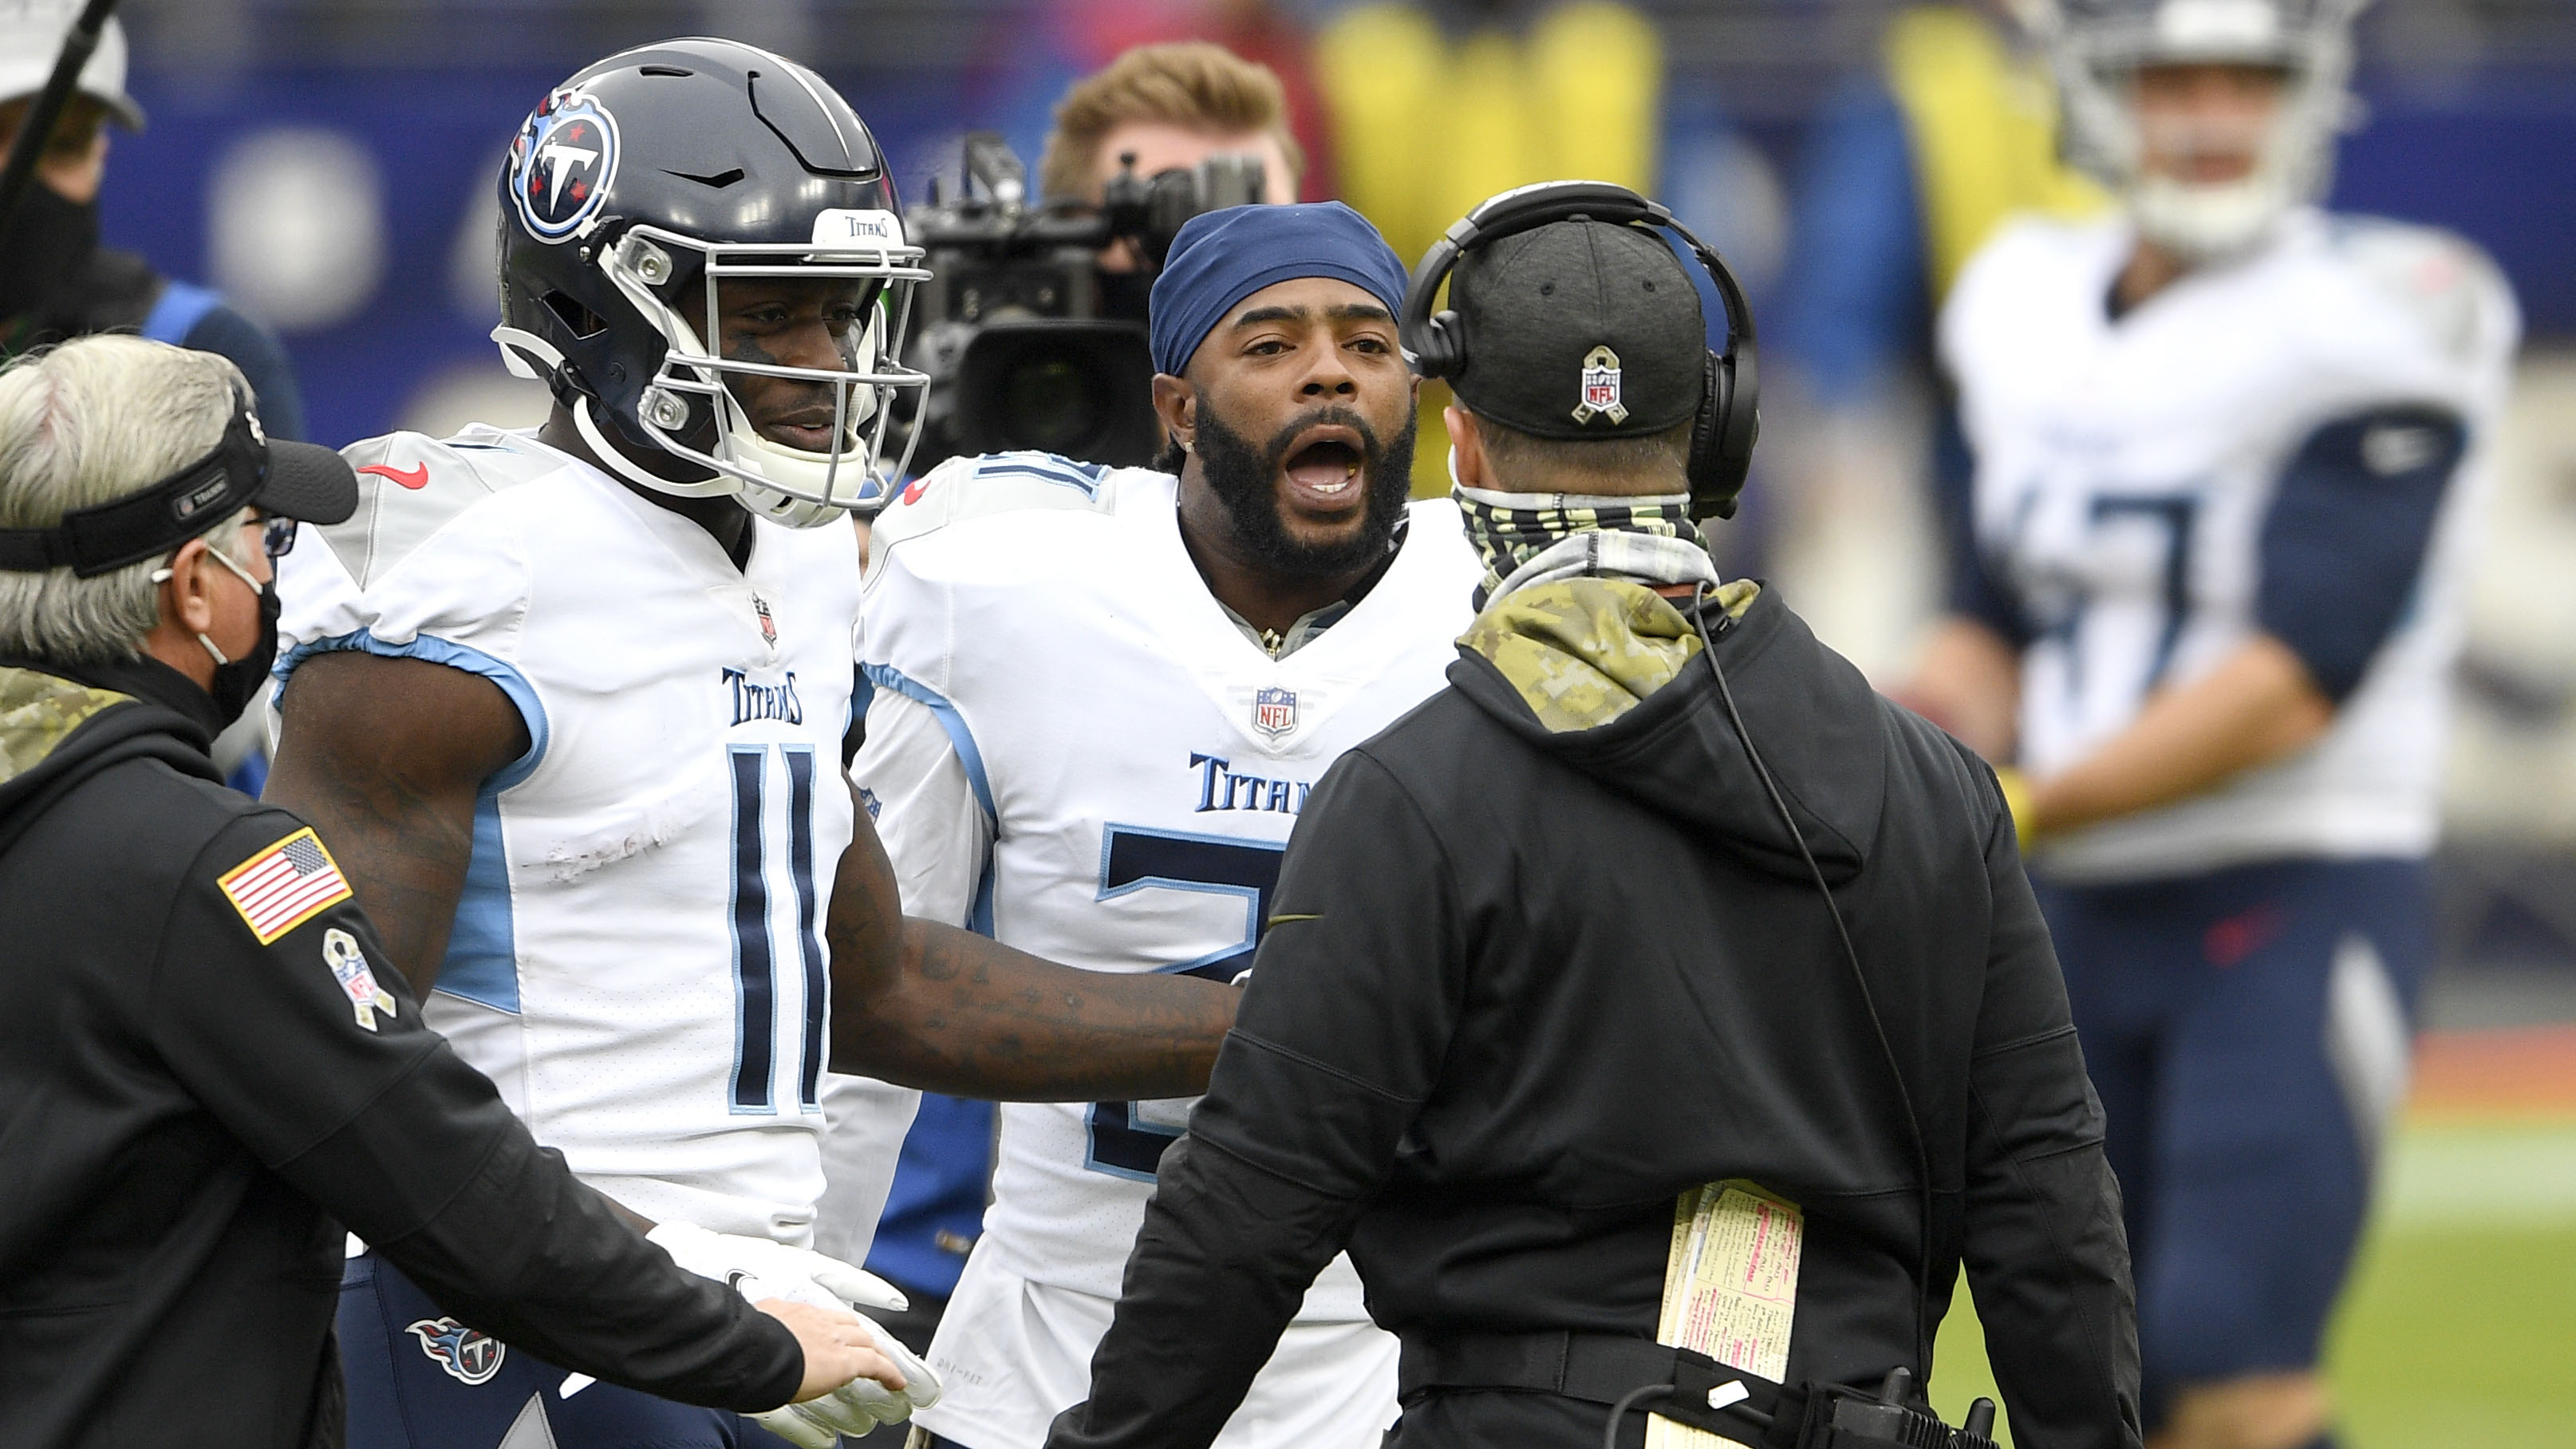 Ravens' John Harbaugh exchanges words with Titans' Malcolm Butler Mike Vrabel after pregame midfield display – Fox News